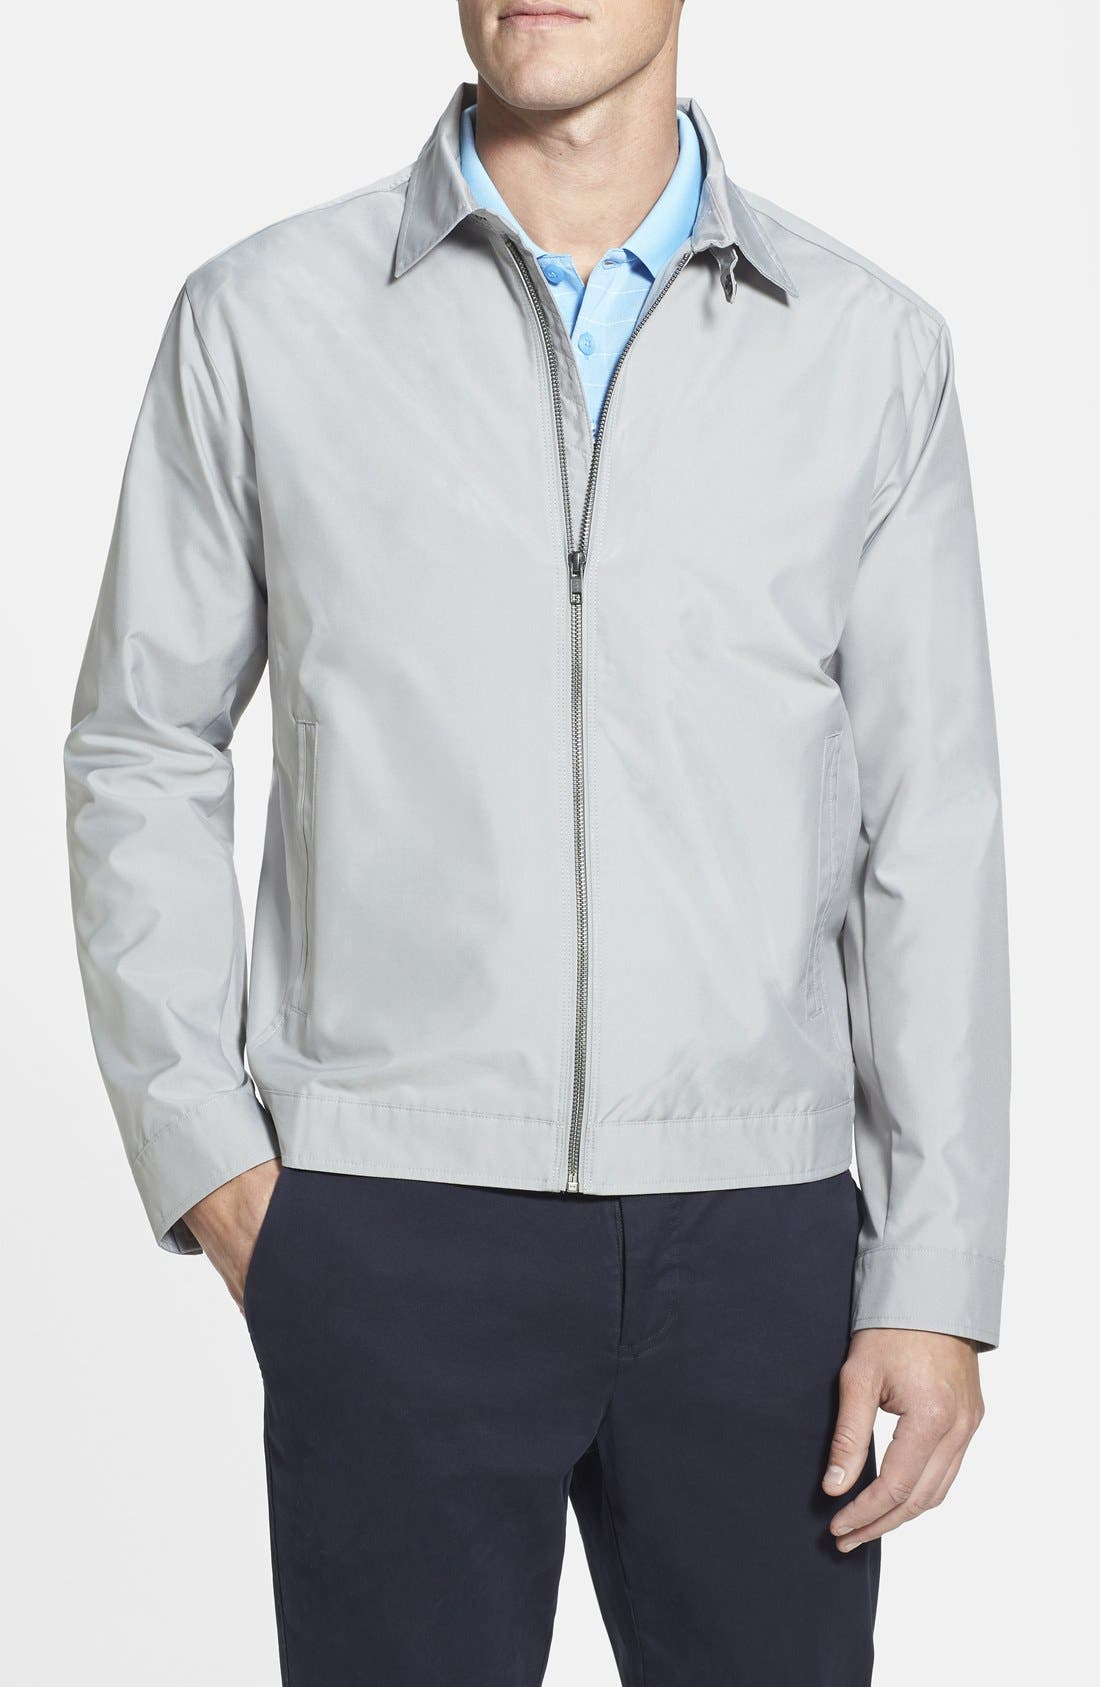 Alternate Image 1 Selected - Cutter & Buck 'WeatherTec Mason' Wind & Water Resistant Jacket